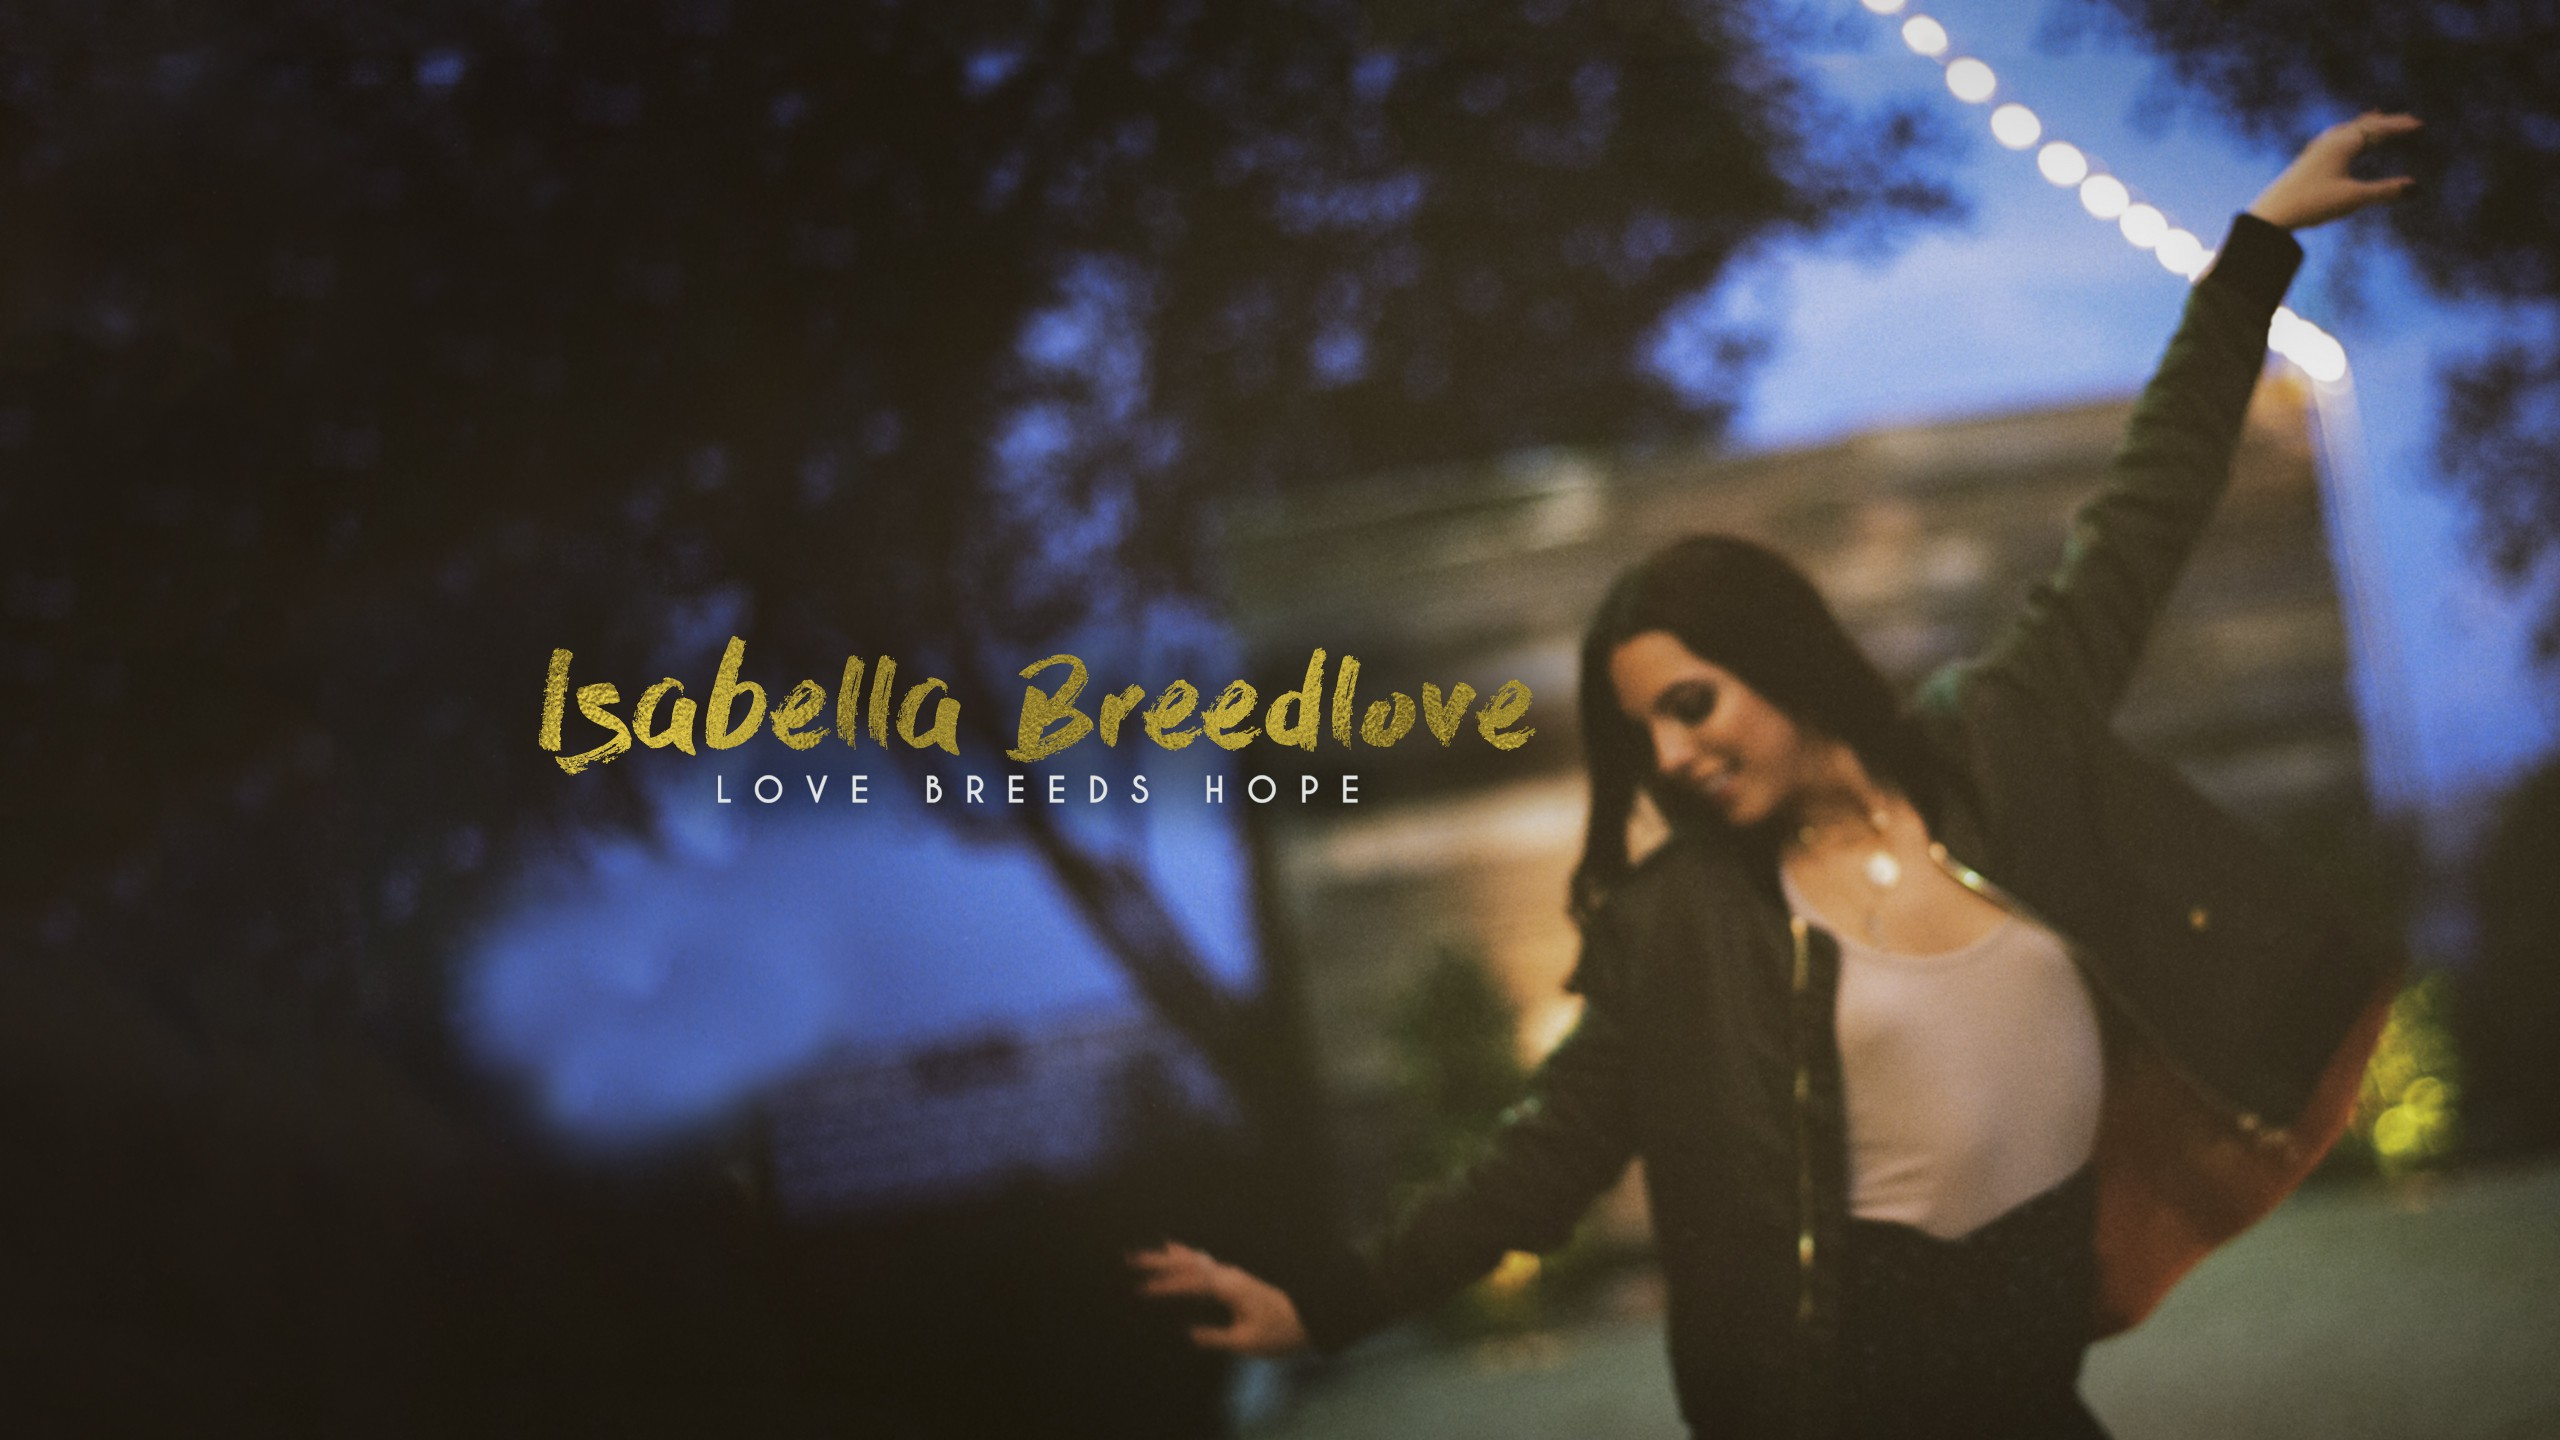 Create a powerful You Tube cover for Isabella Breedlove an upcoming Country Artist.